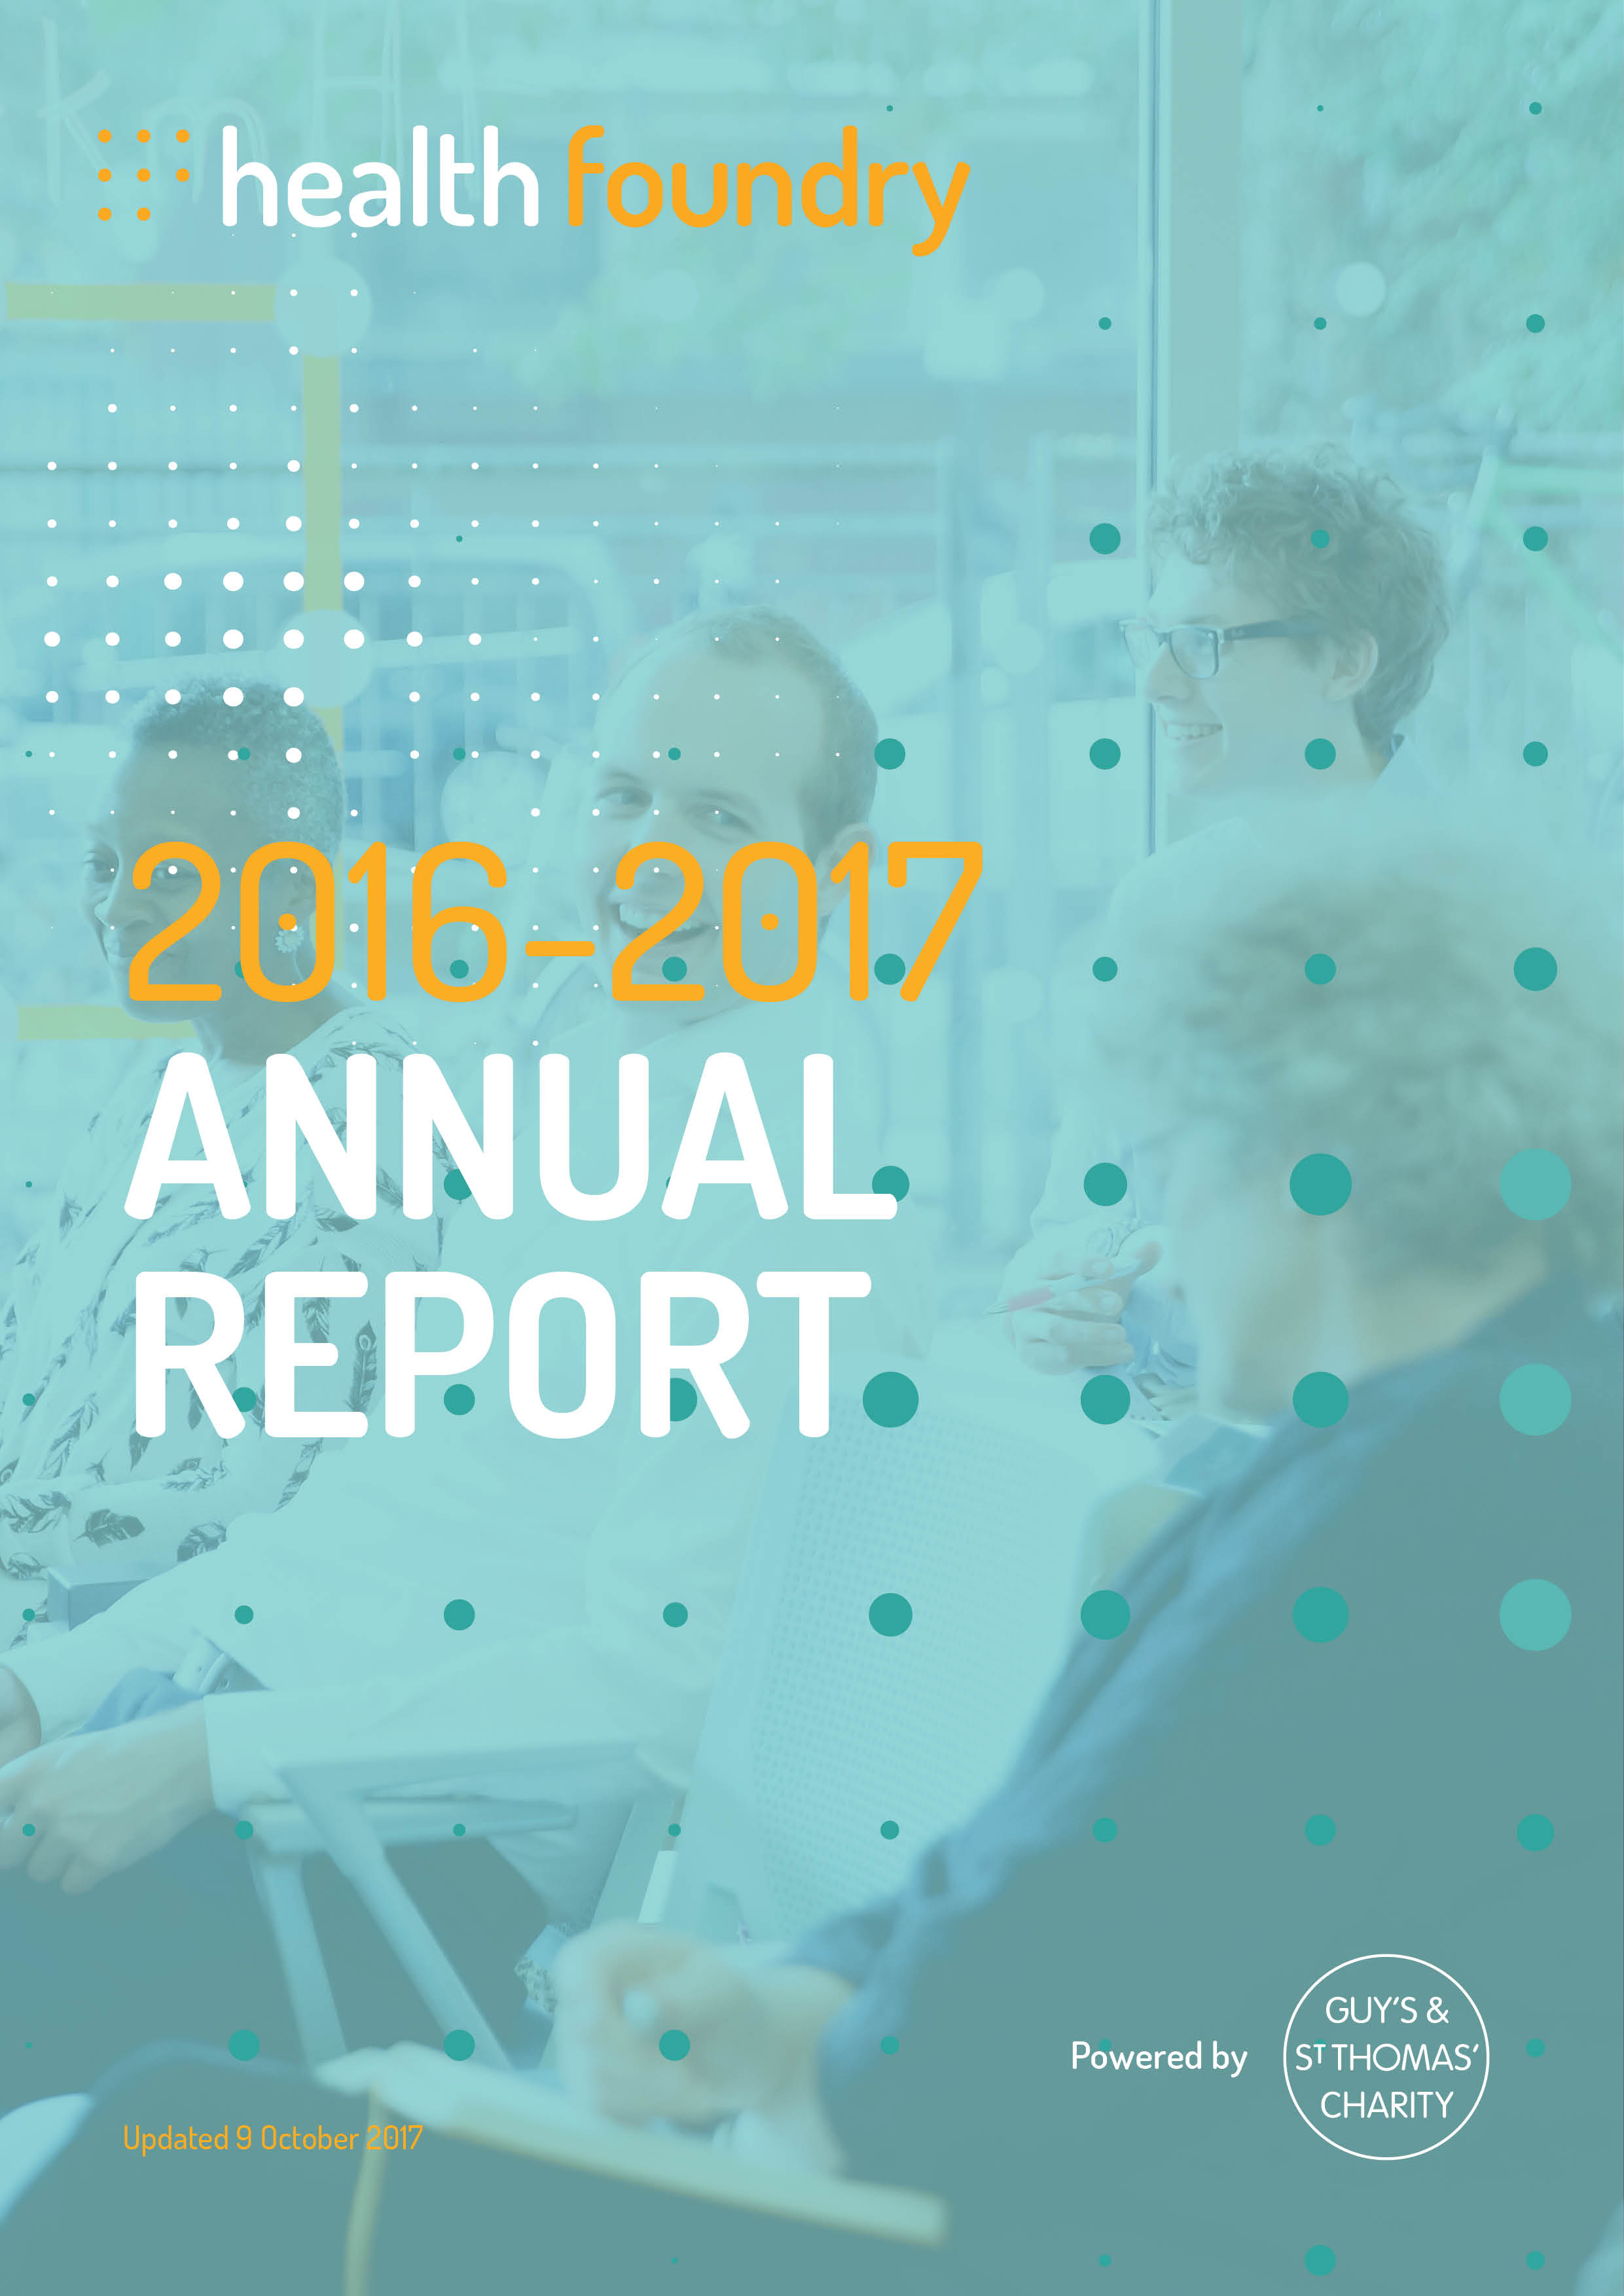 Health Foundry 2016-17 Annual Report Cover page.jpg